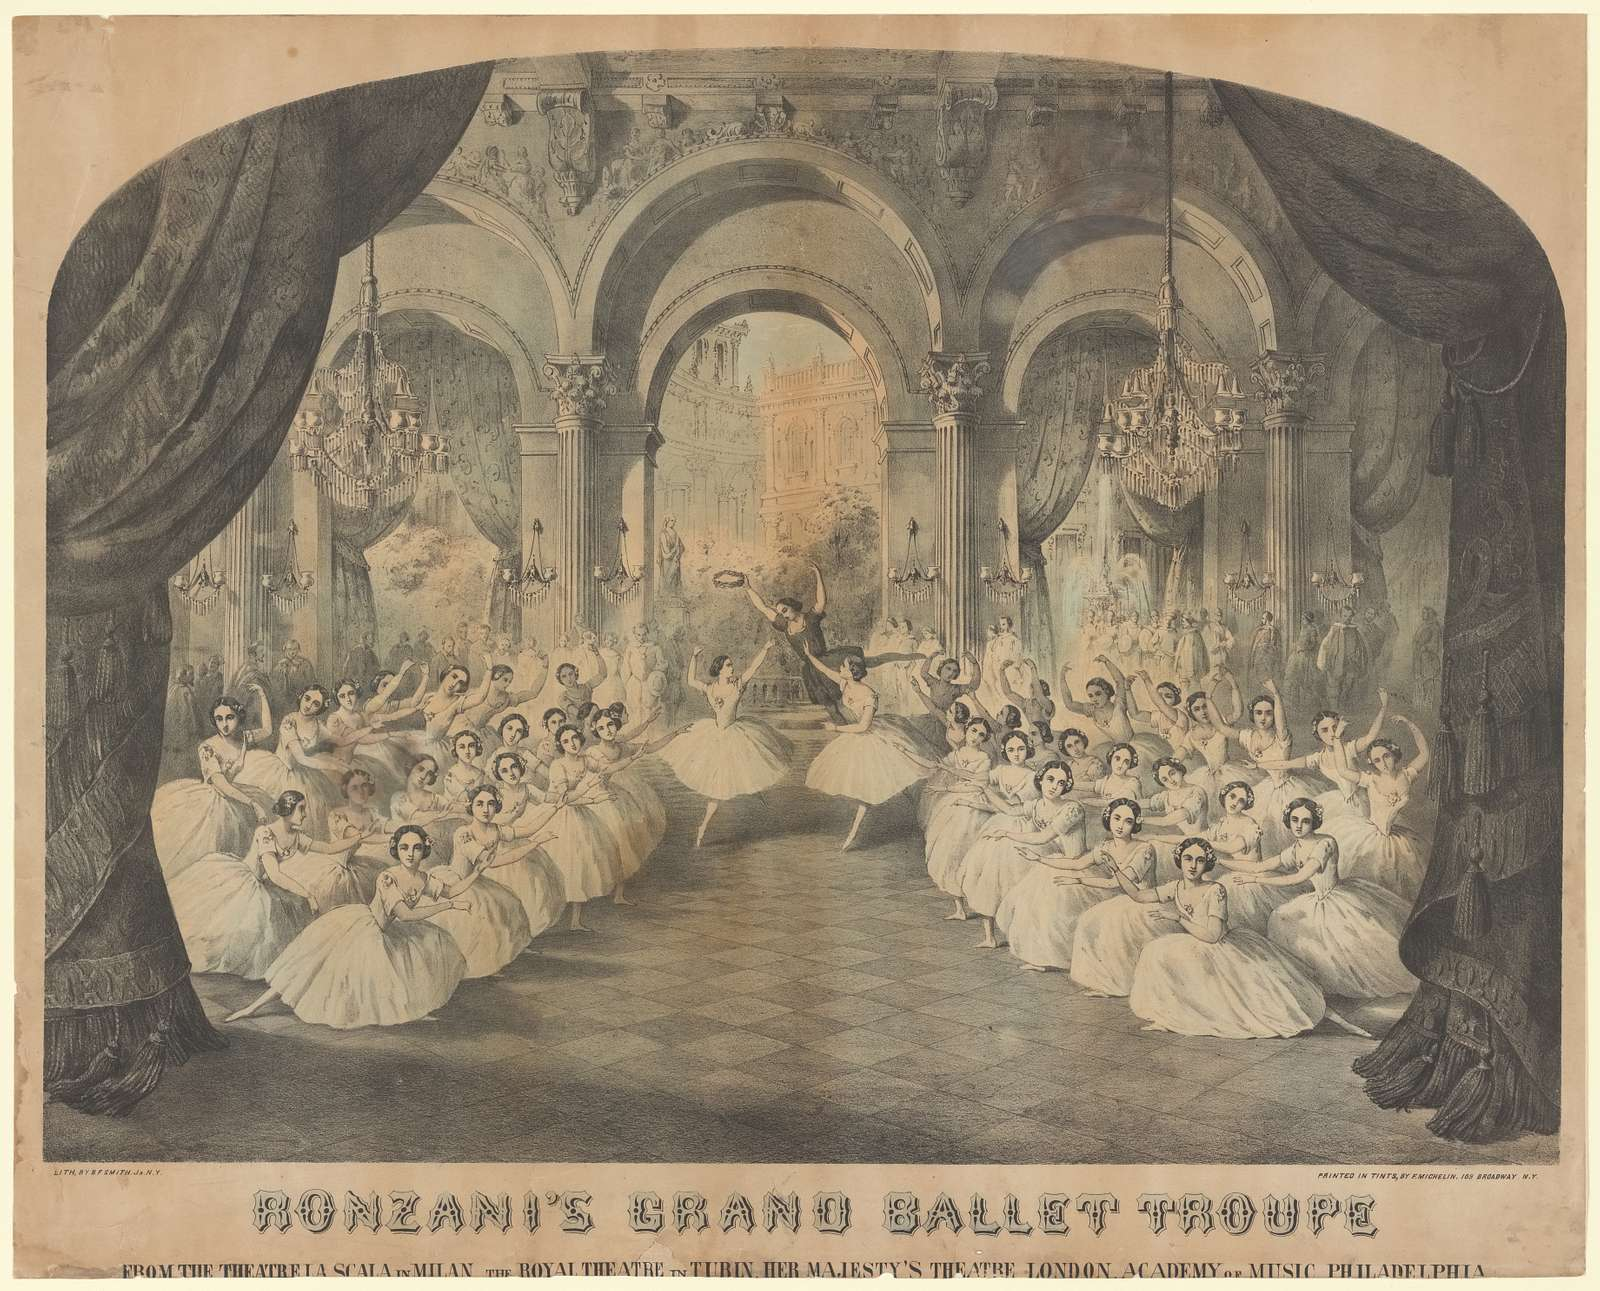 Ronzani's Grand Ballet Troupe: from the theatre La Scala in Milan, the Royal Theatre in Turin, Her Majesty's Theatre London, Academy of Music Philadelphia